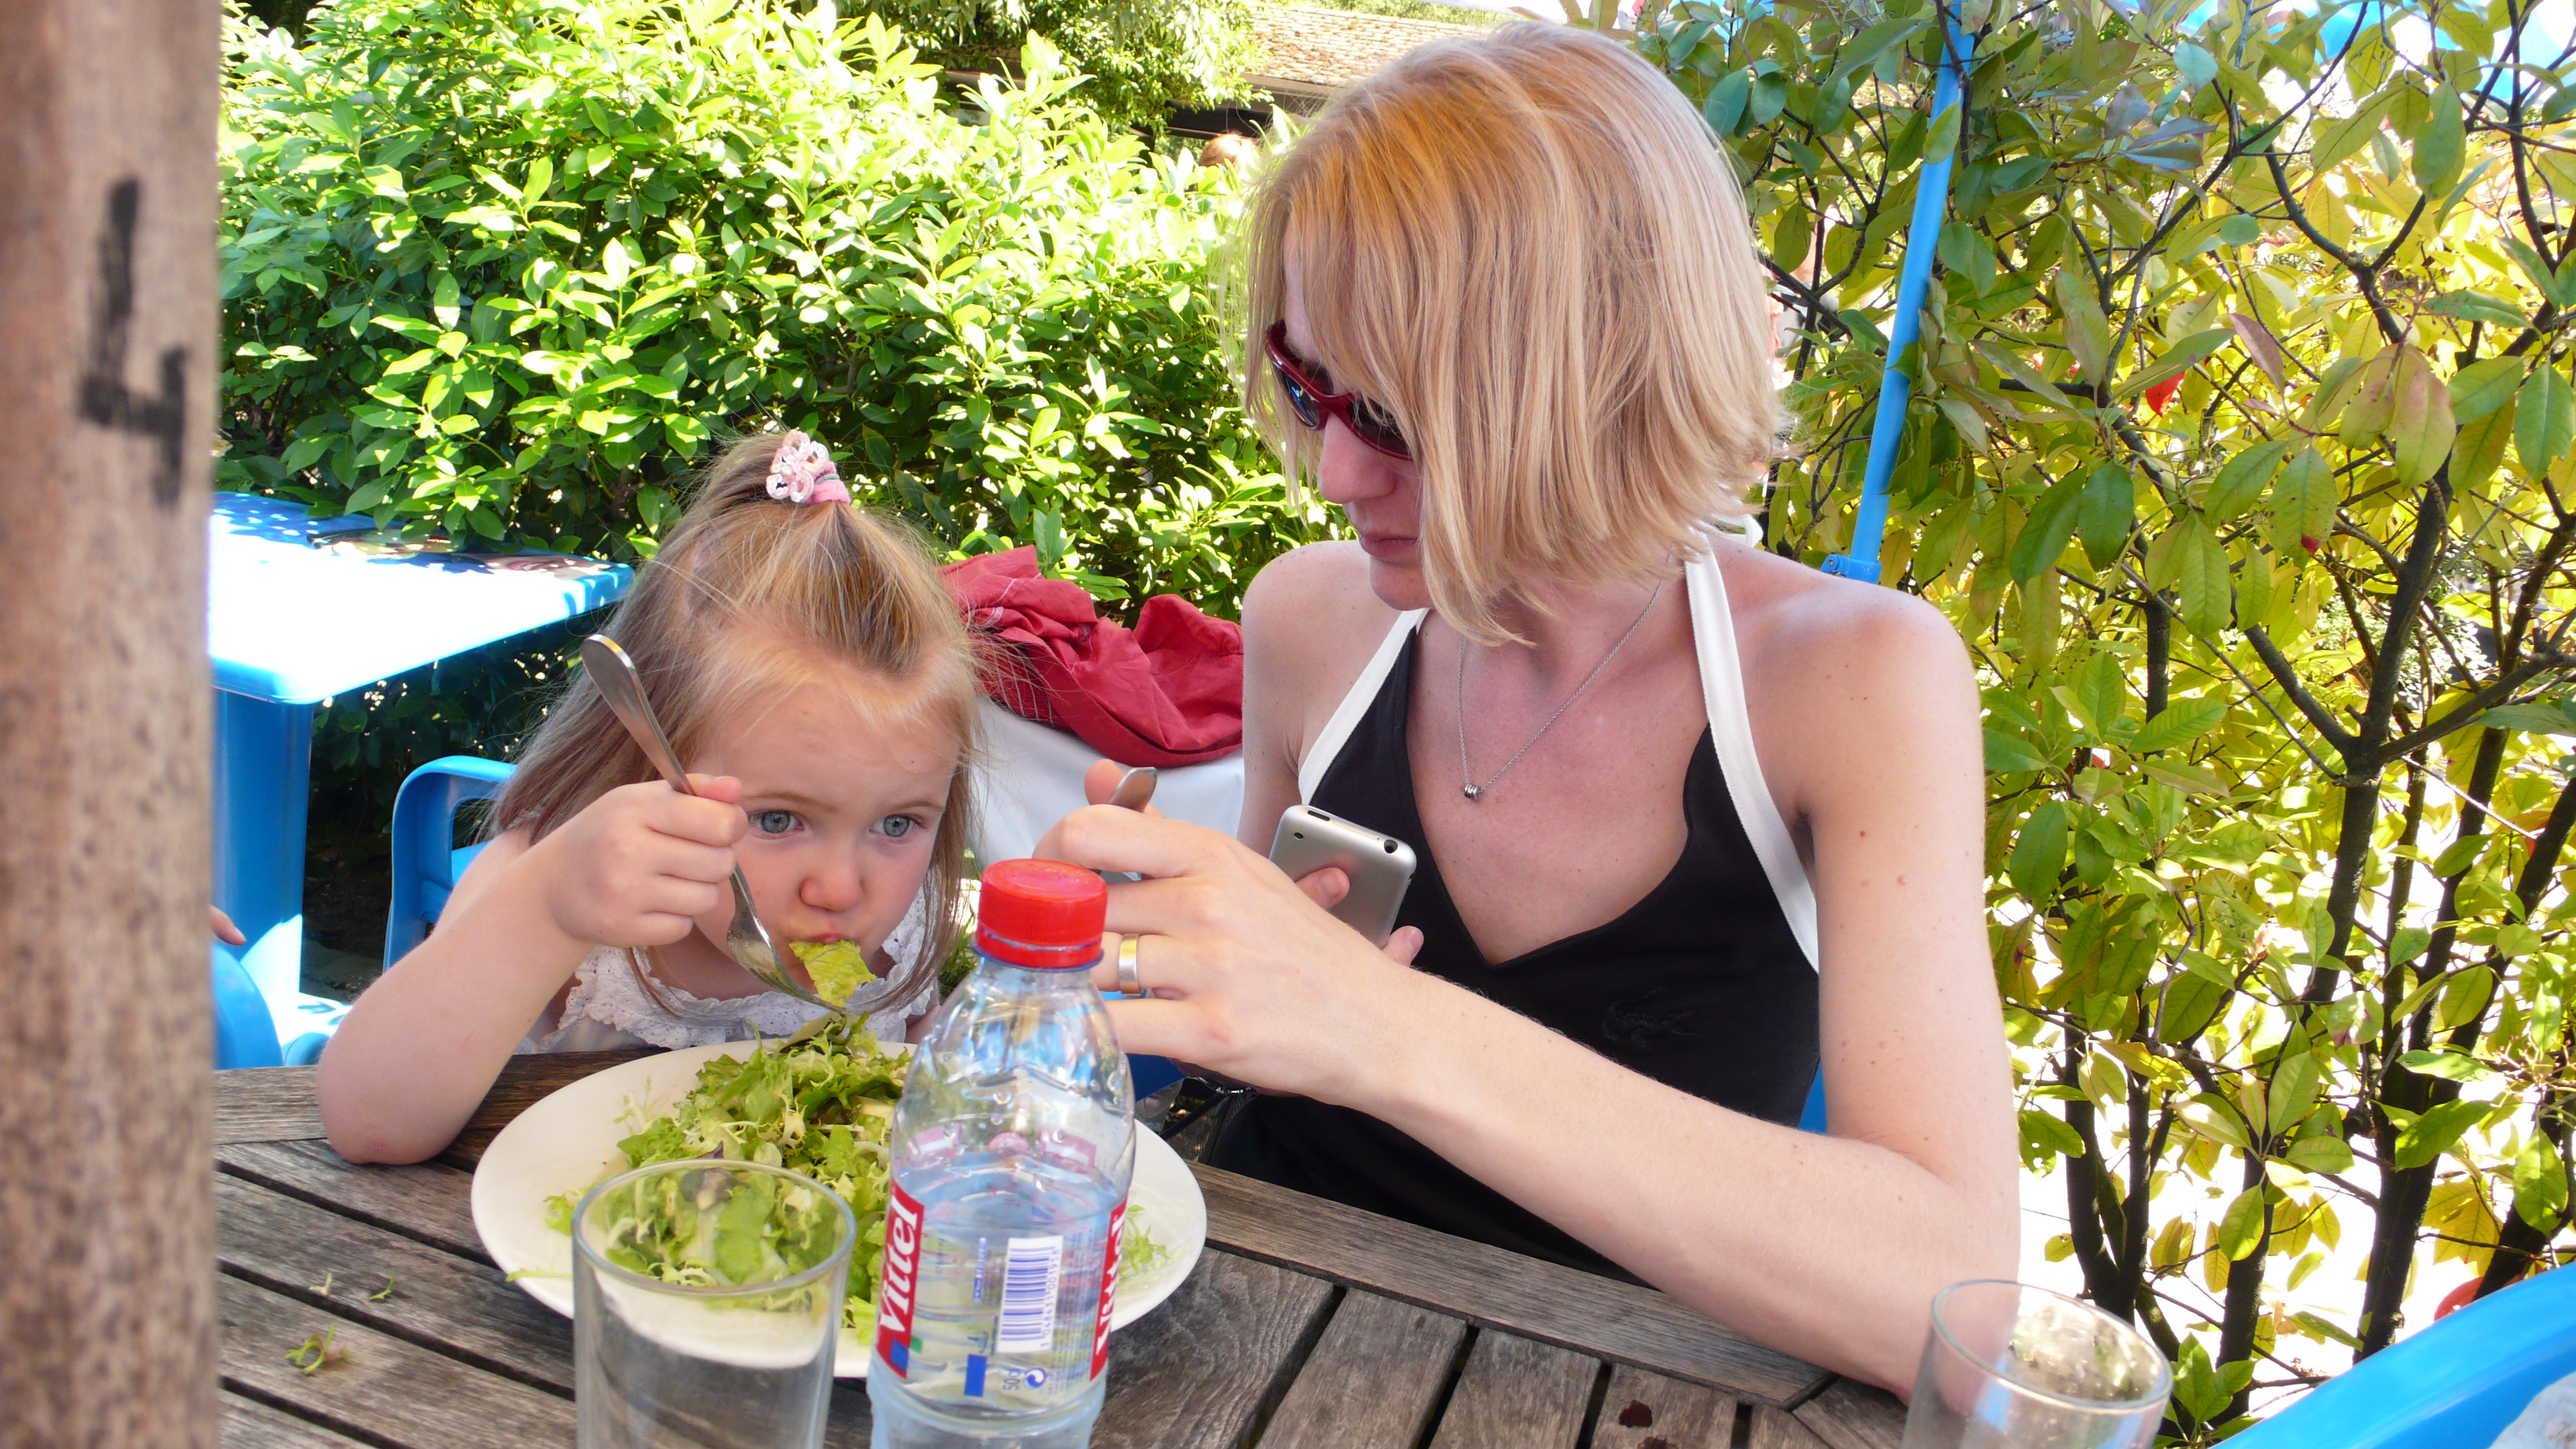 Sharing a Salad in the Parc Floral